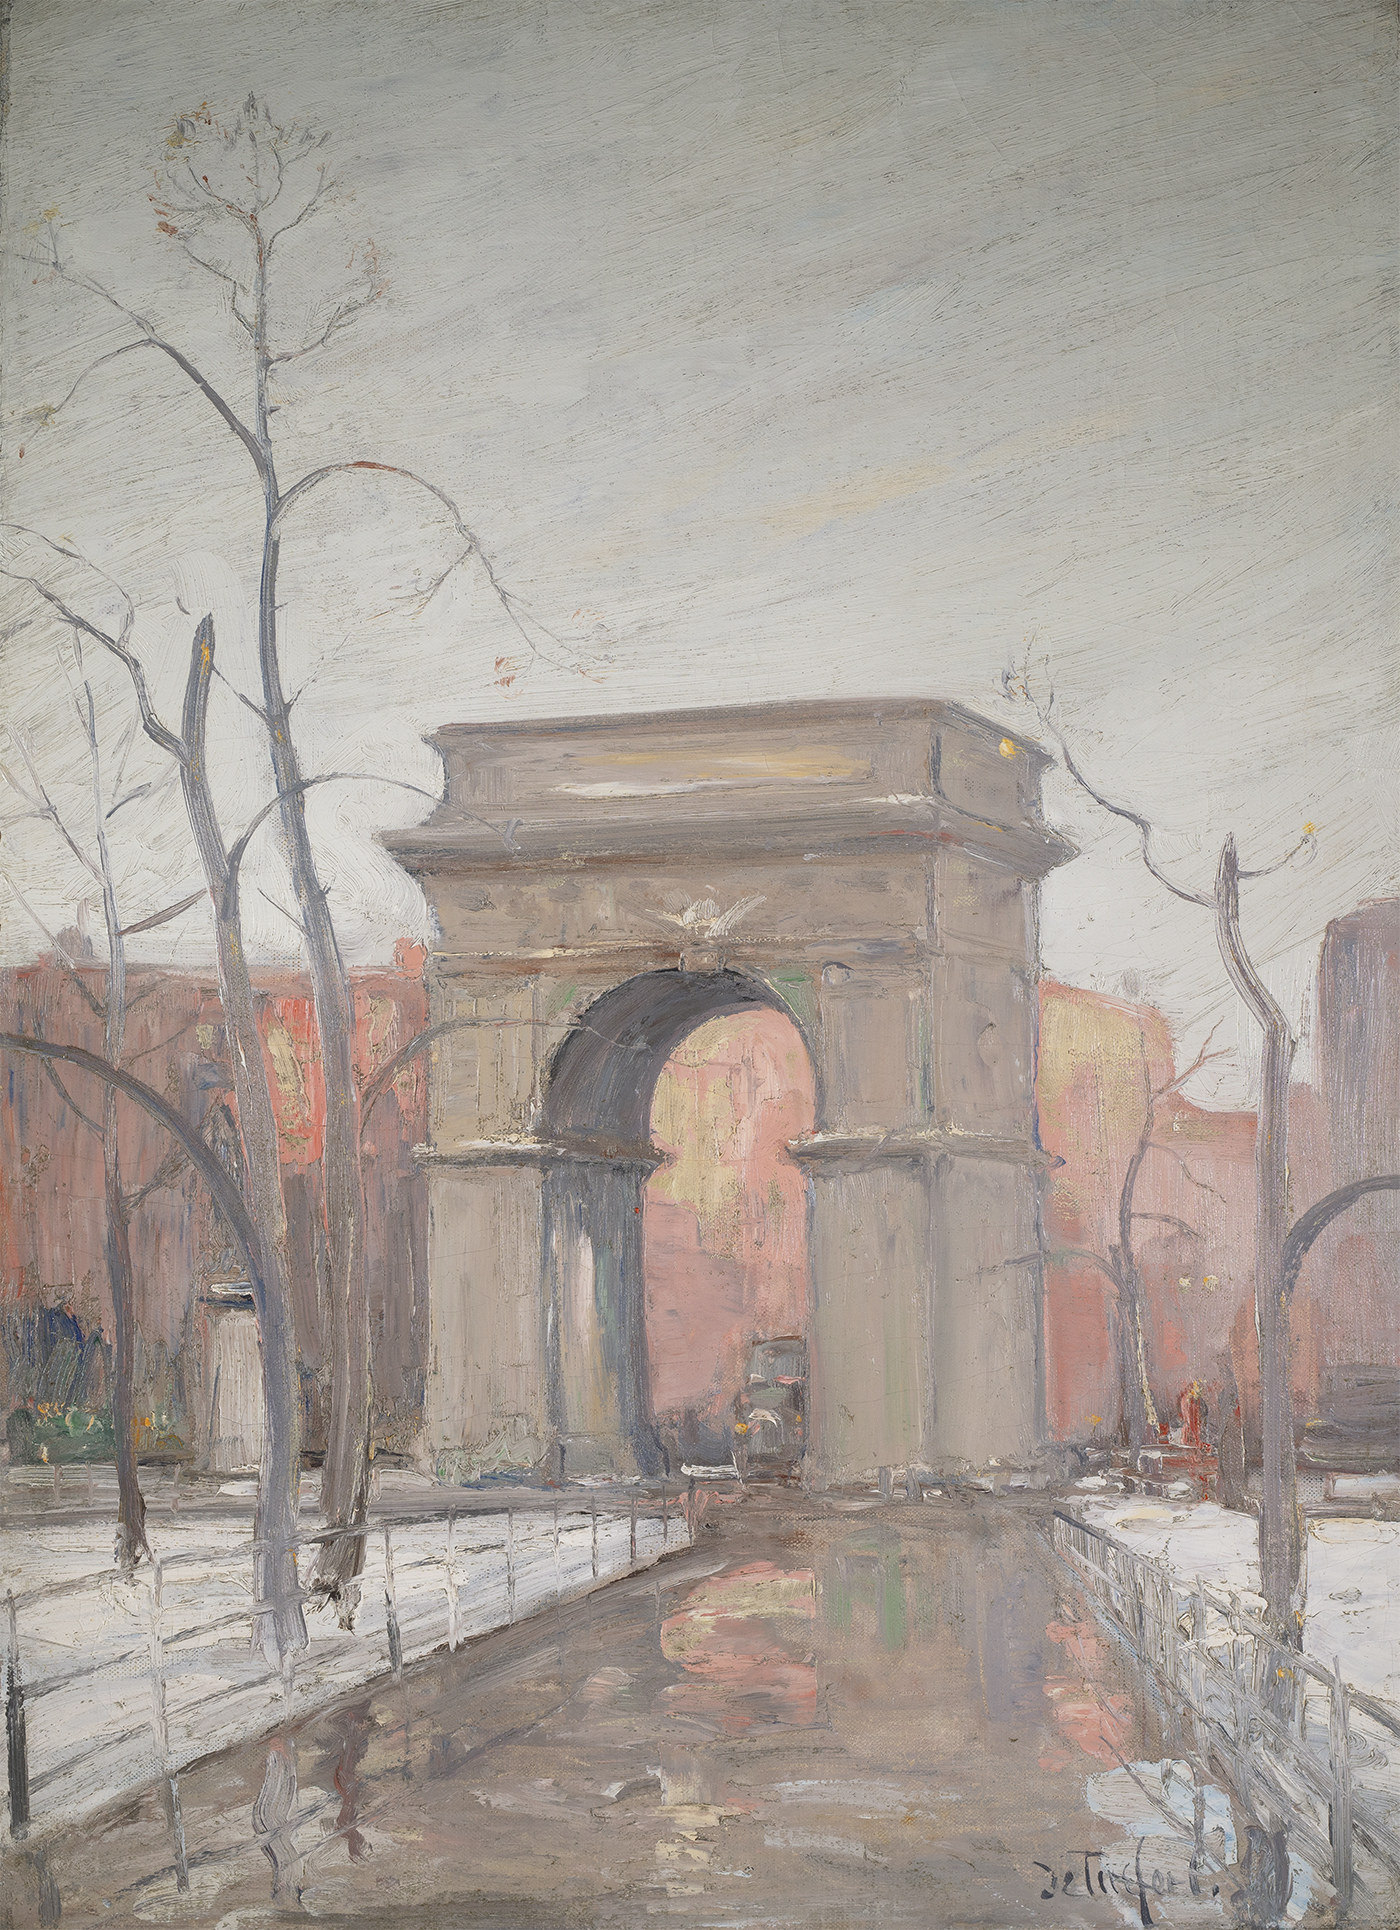 de Tirefort-Winter in Washington Square Park